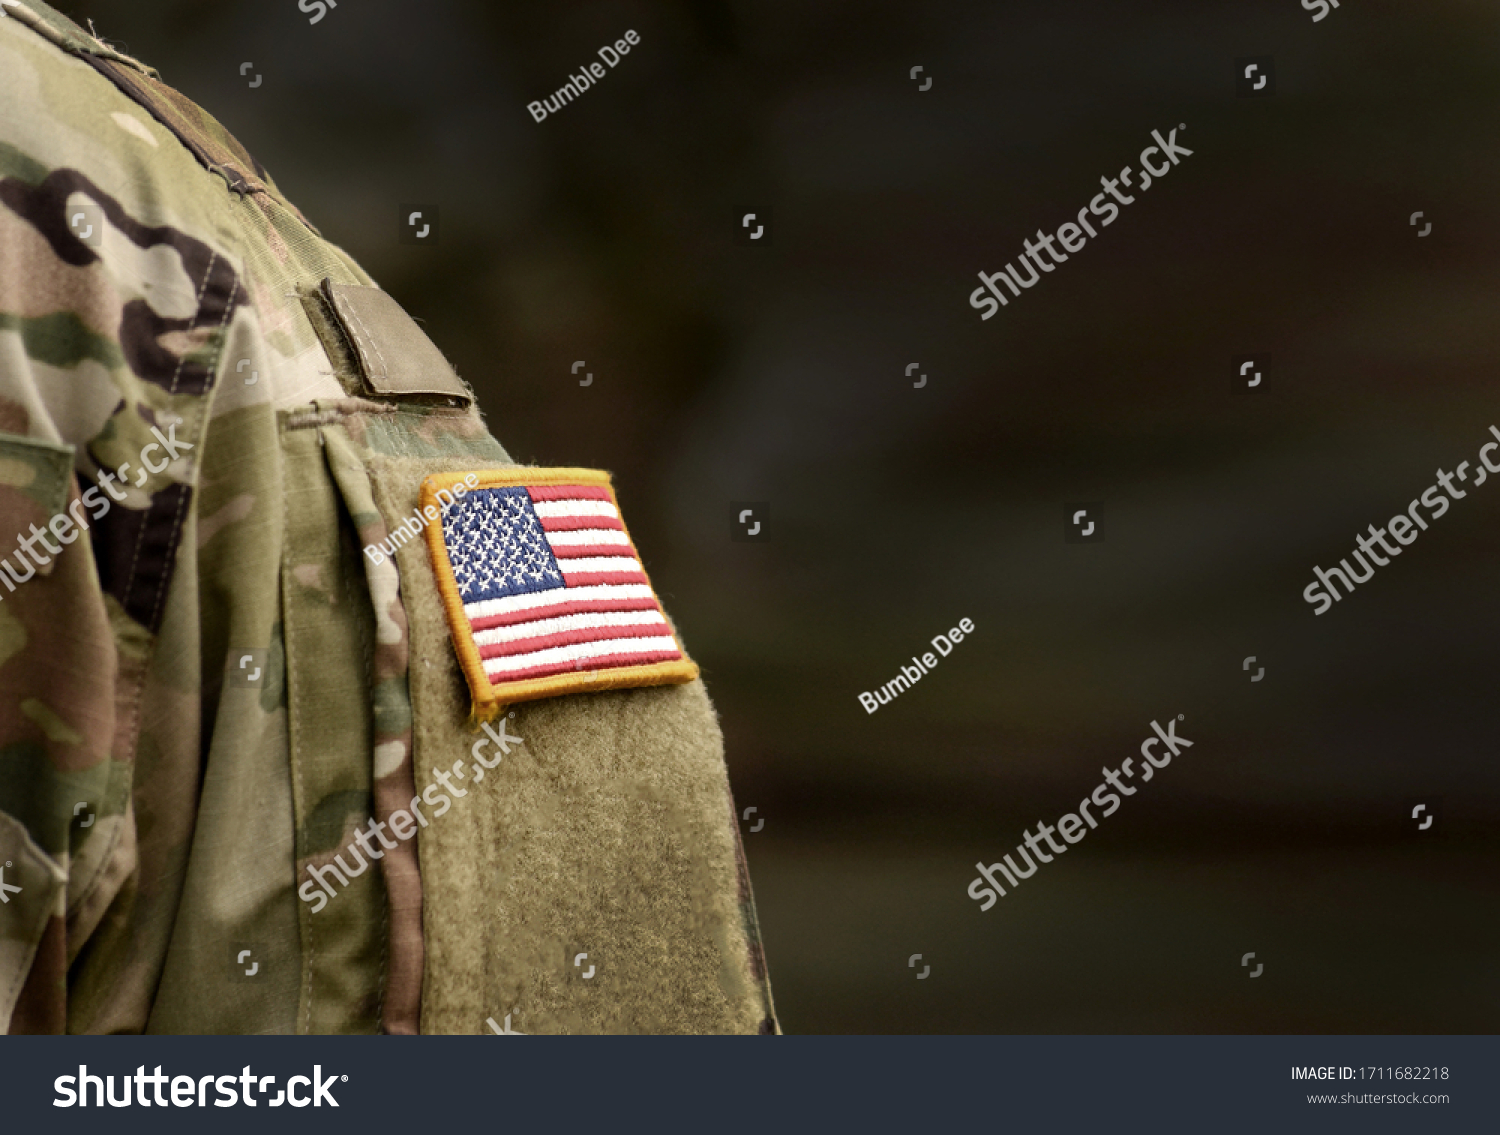 Memorial day. Veterans Day. US soldier. US Army. The United States Armed Forces. Military forces of the United States of America. Empty space for text #1711682218